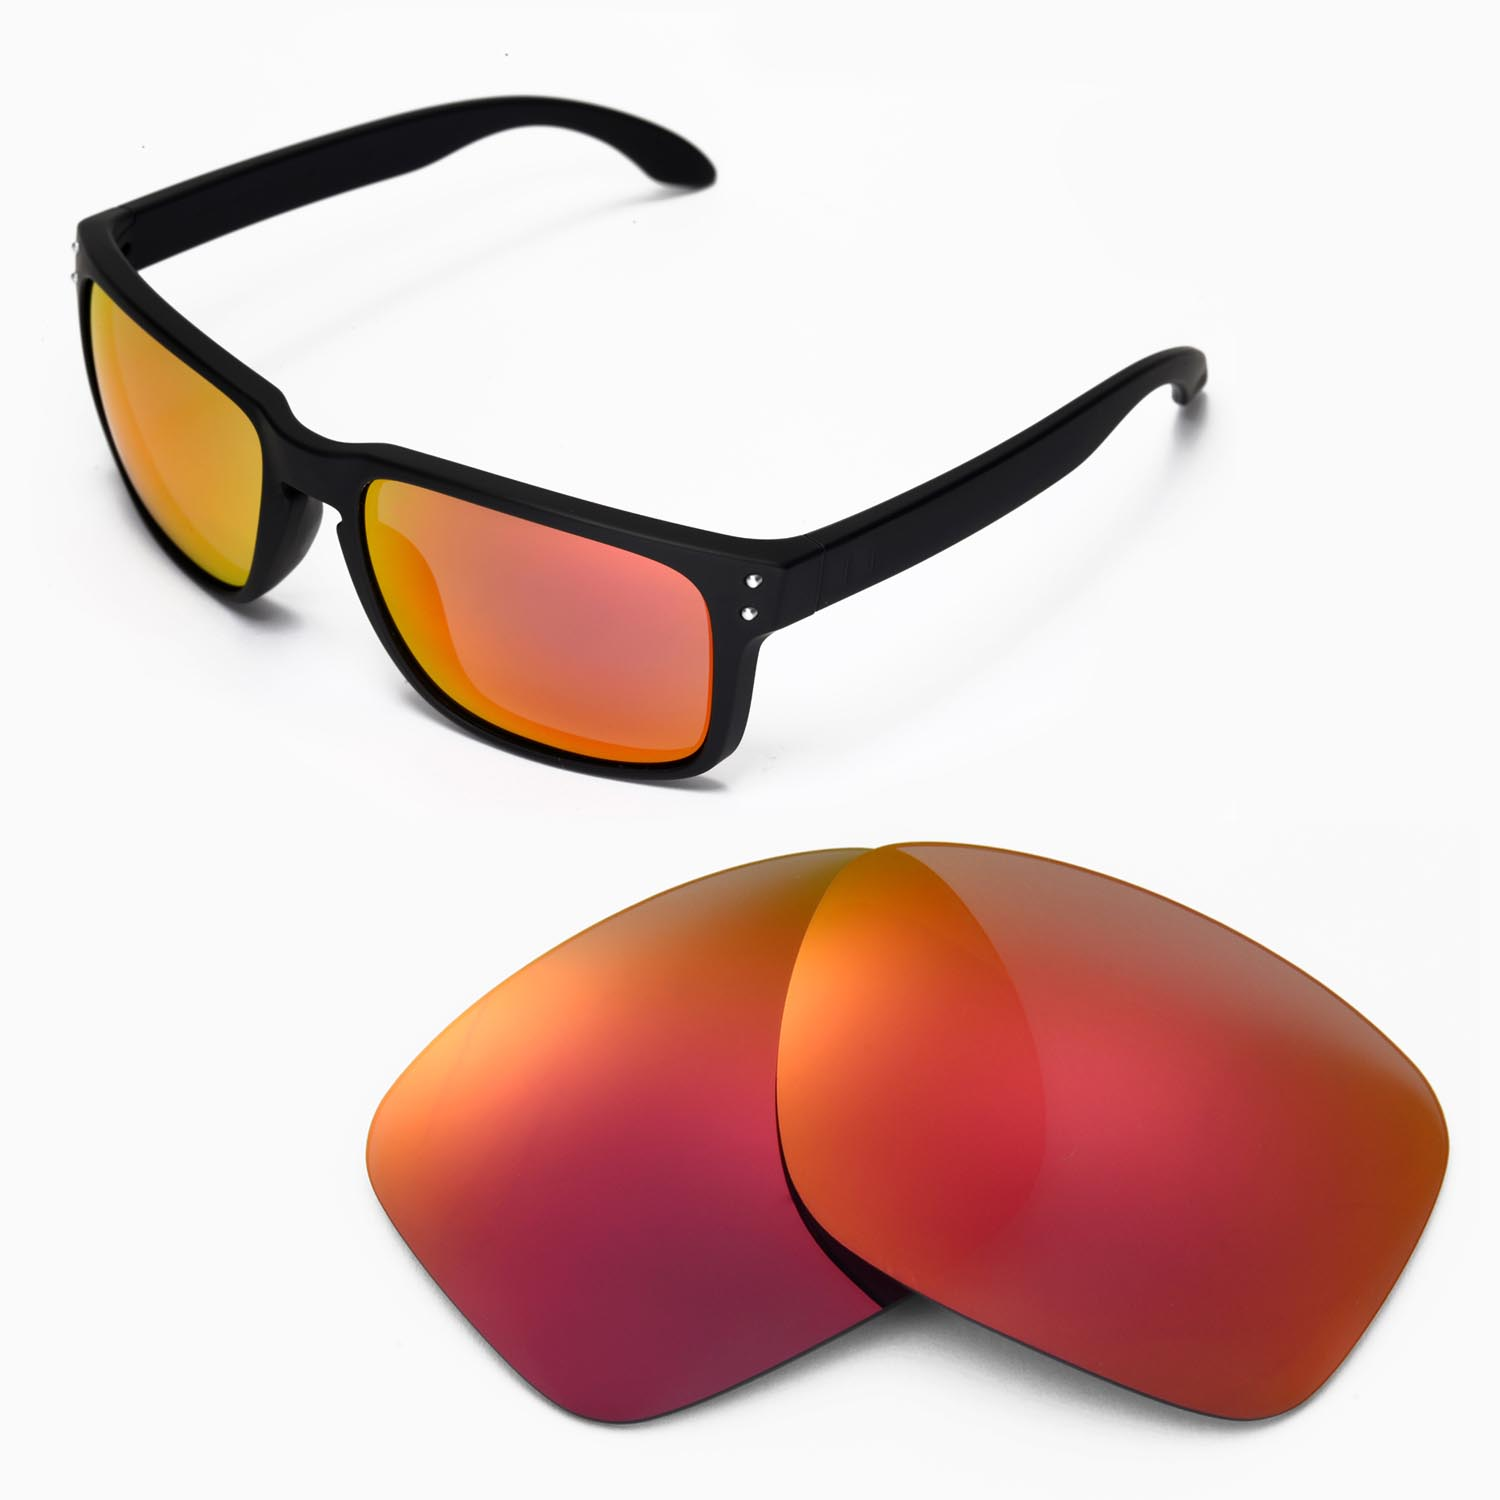 New Walleva Fire Red Replacement Lenses For Oakley Holbrook ... fdfd0b034679